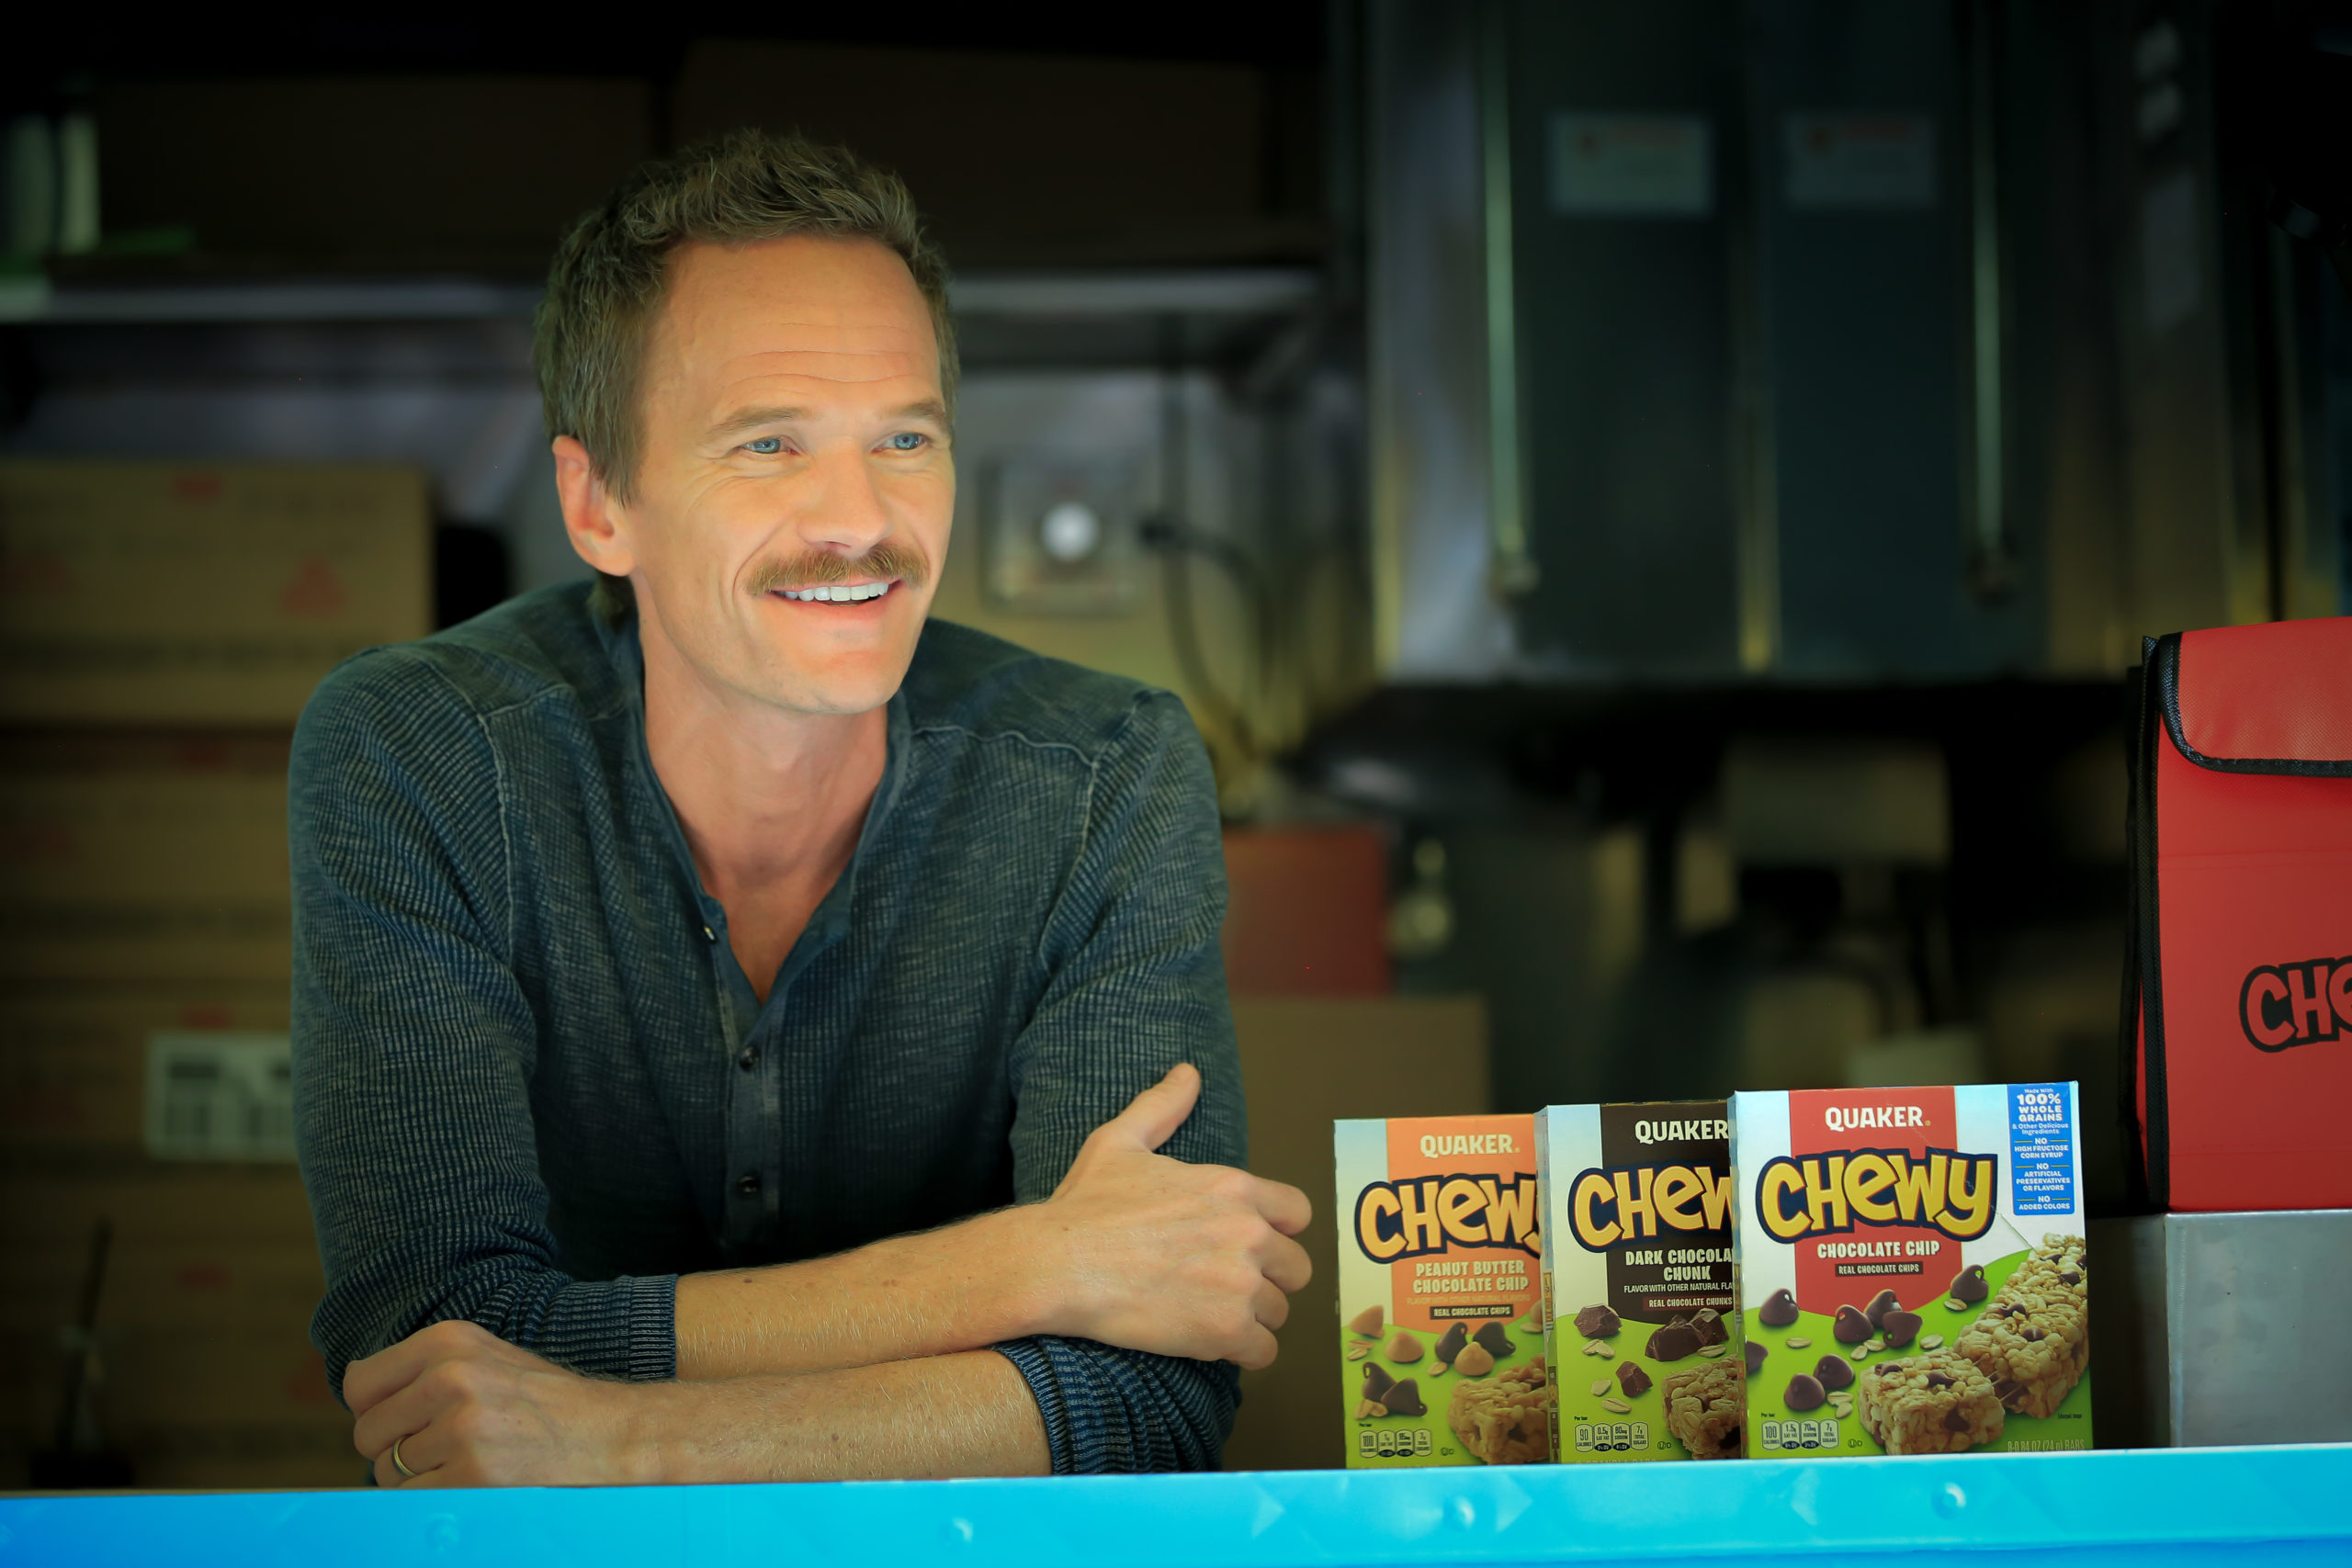 Neil Patrick Harris Influencer Marketing